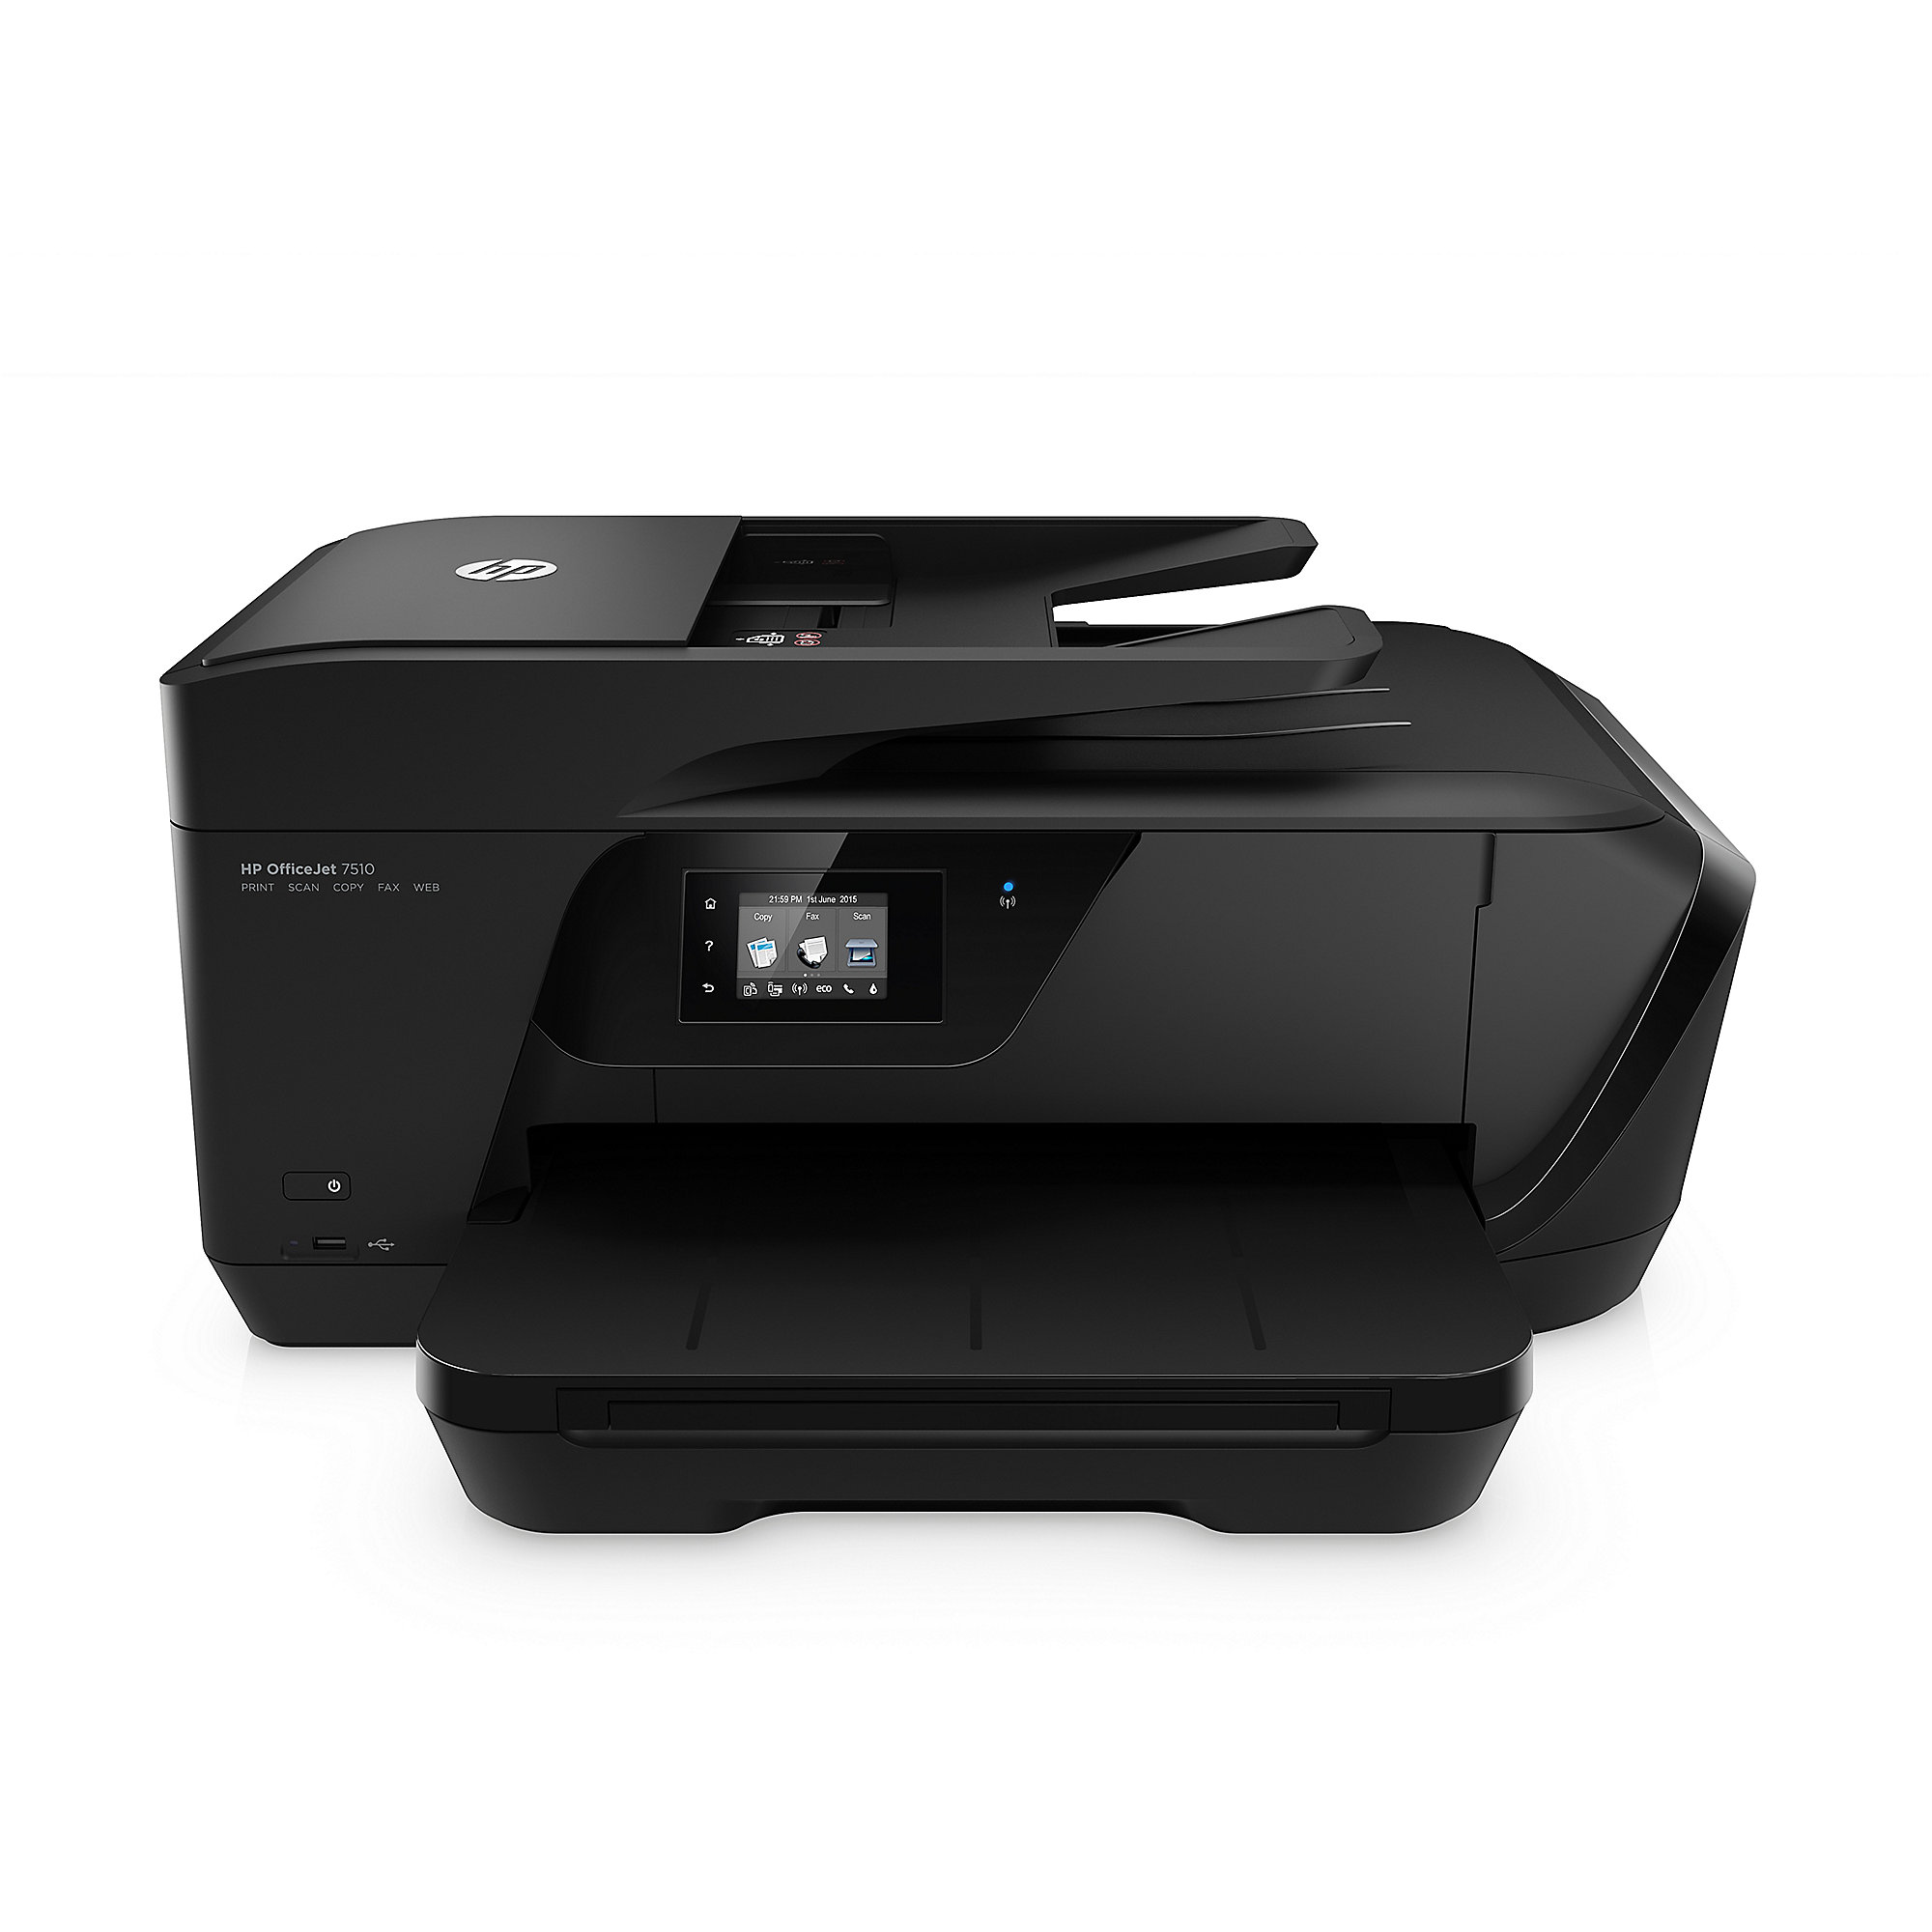 HP OfficeJet 7510 Tintenstrahlmultifunktionsdrucker Scanner Kopierer Fax WLAN A3